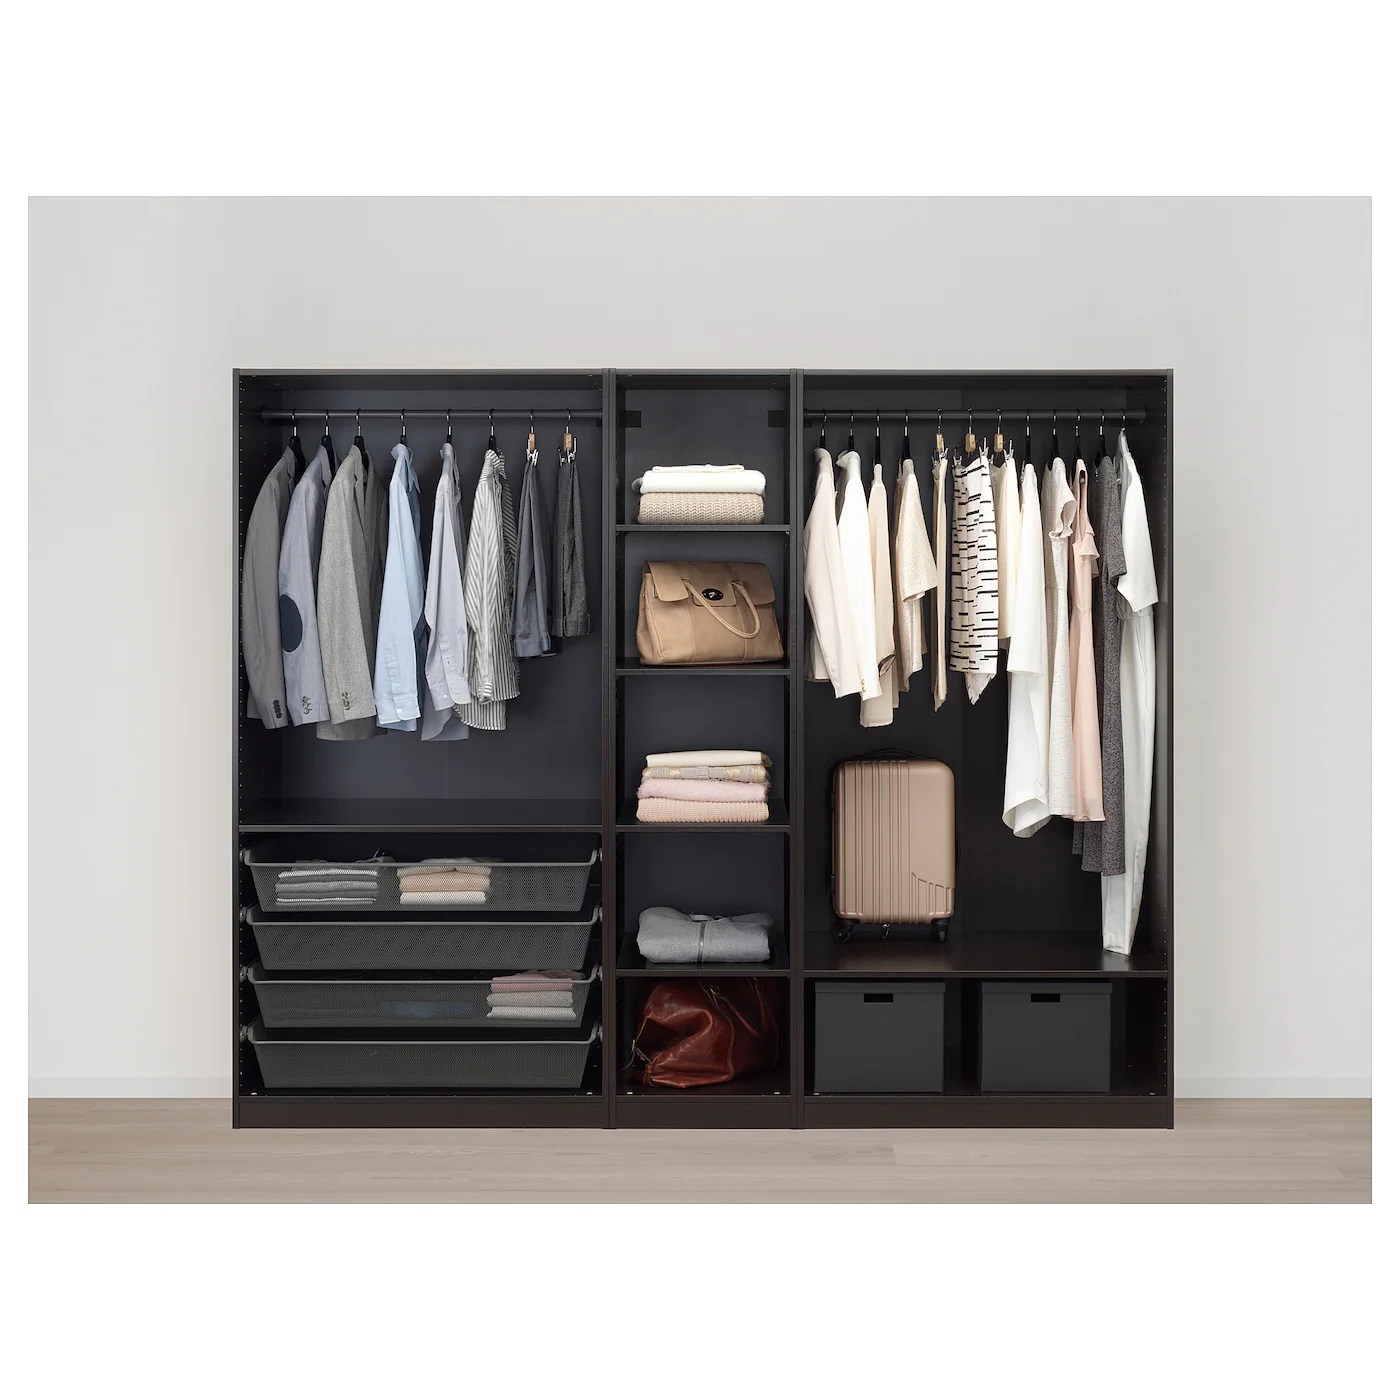 Ikea Paxkasten Pax Wardrobe Black Brown Forsand Black Brown Stained Ash Effect